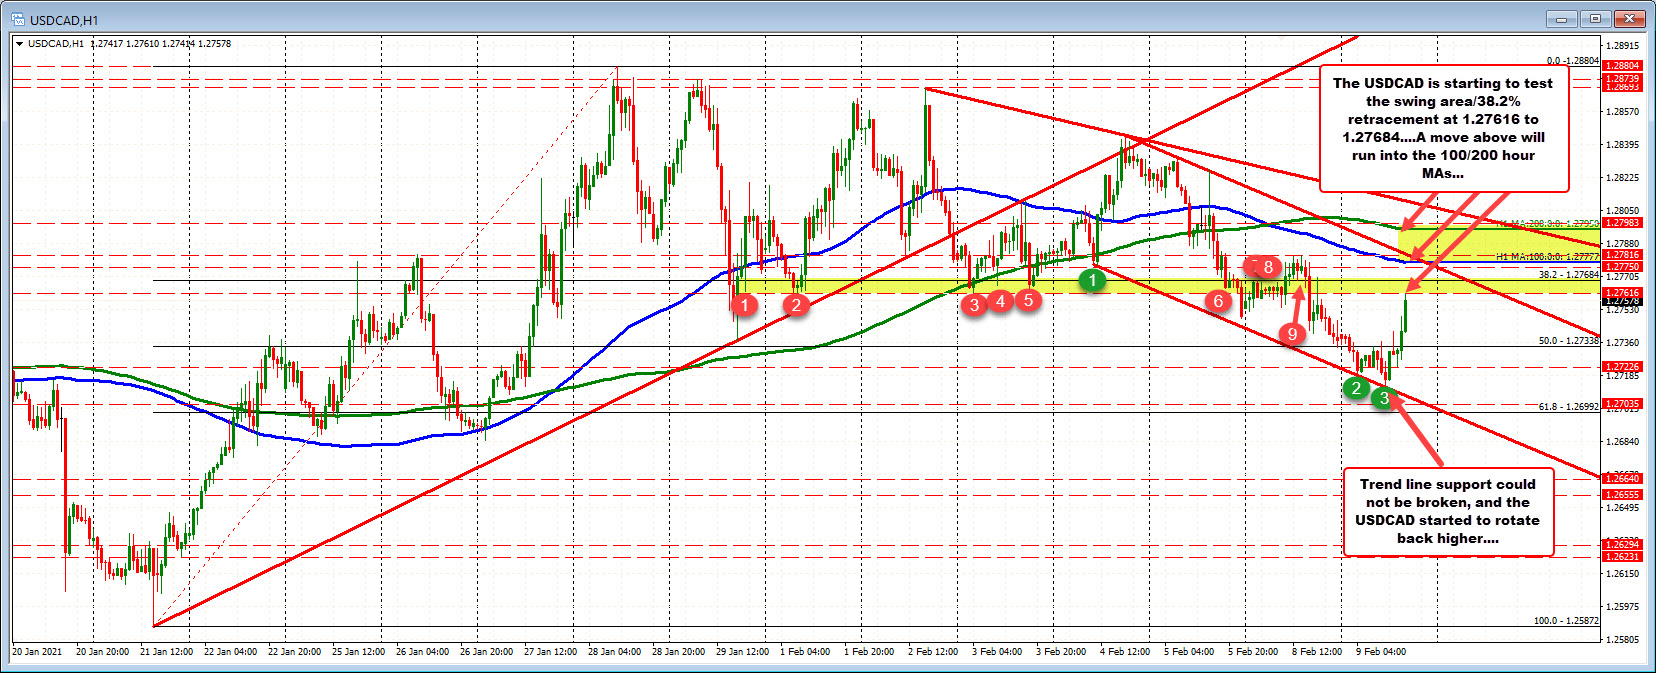 USDCAD bounces. Trades to new session highs.